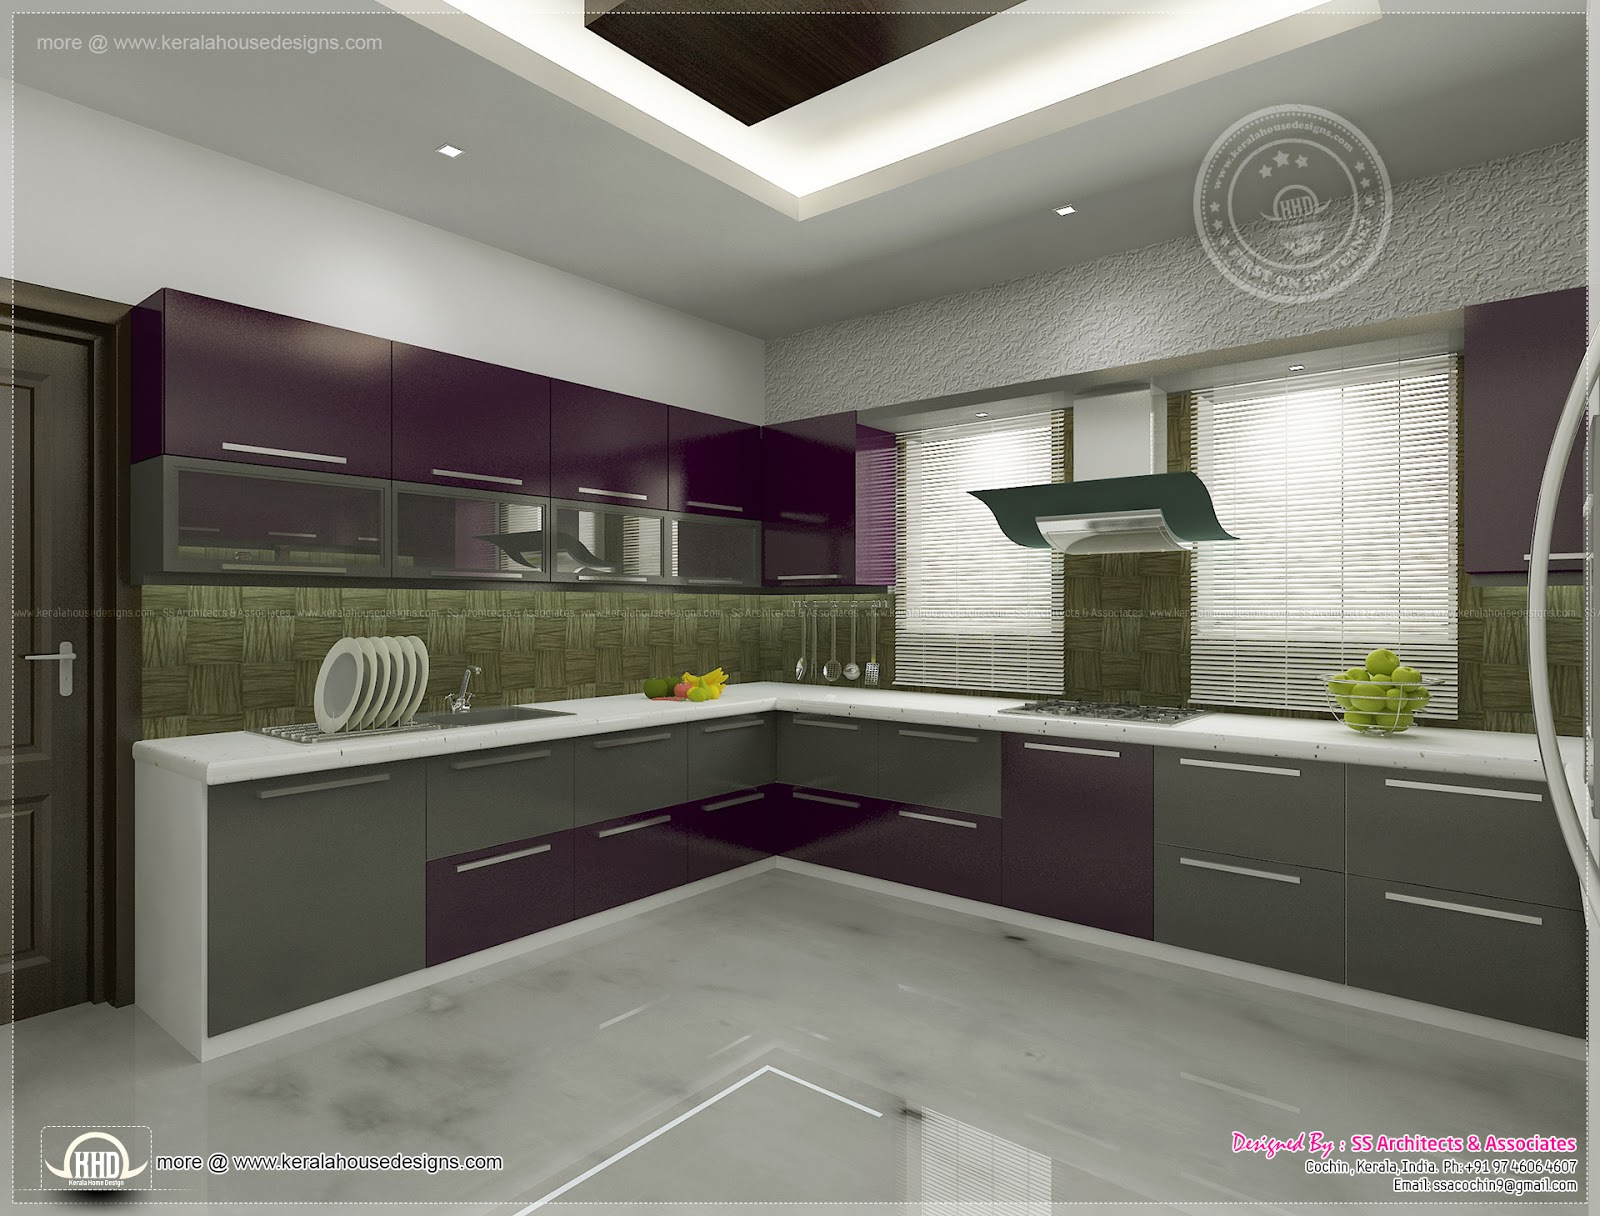 Kitchen interior views by ss architects cochin home Kitchen interior design